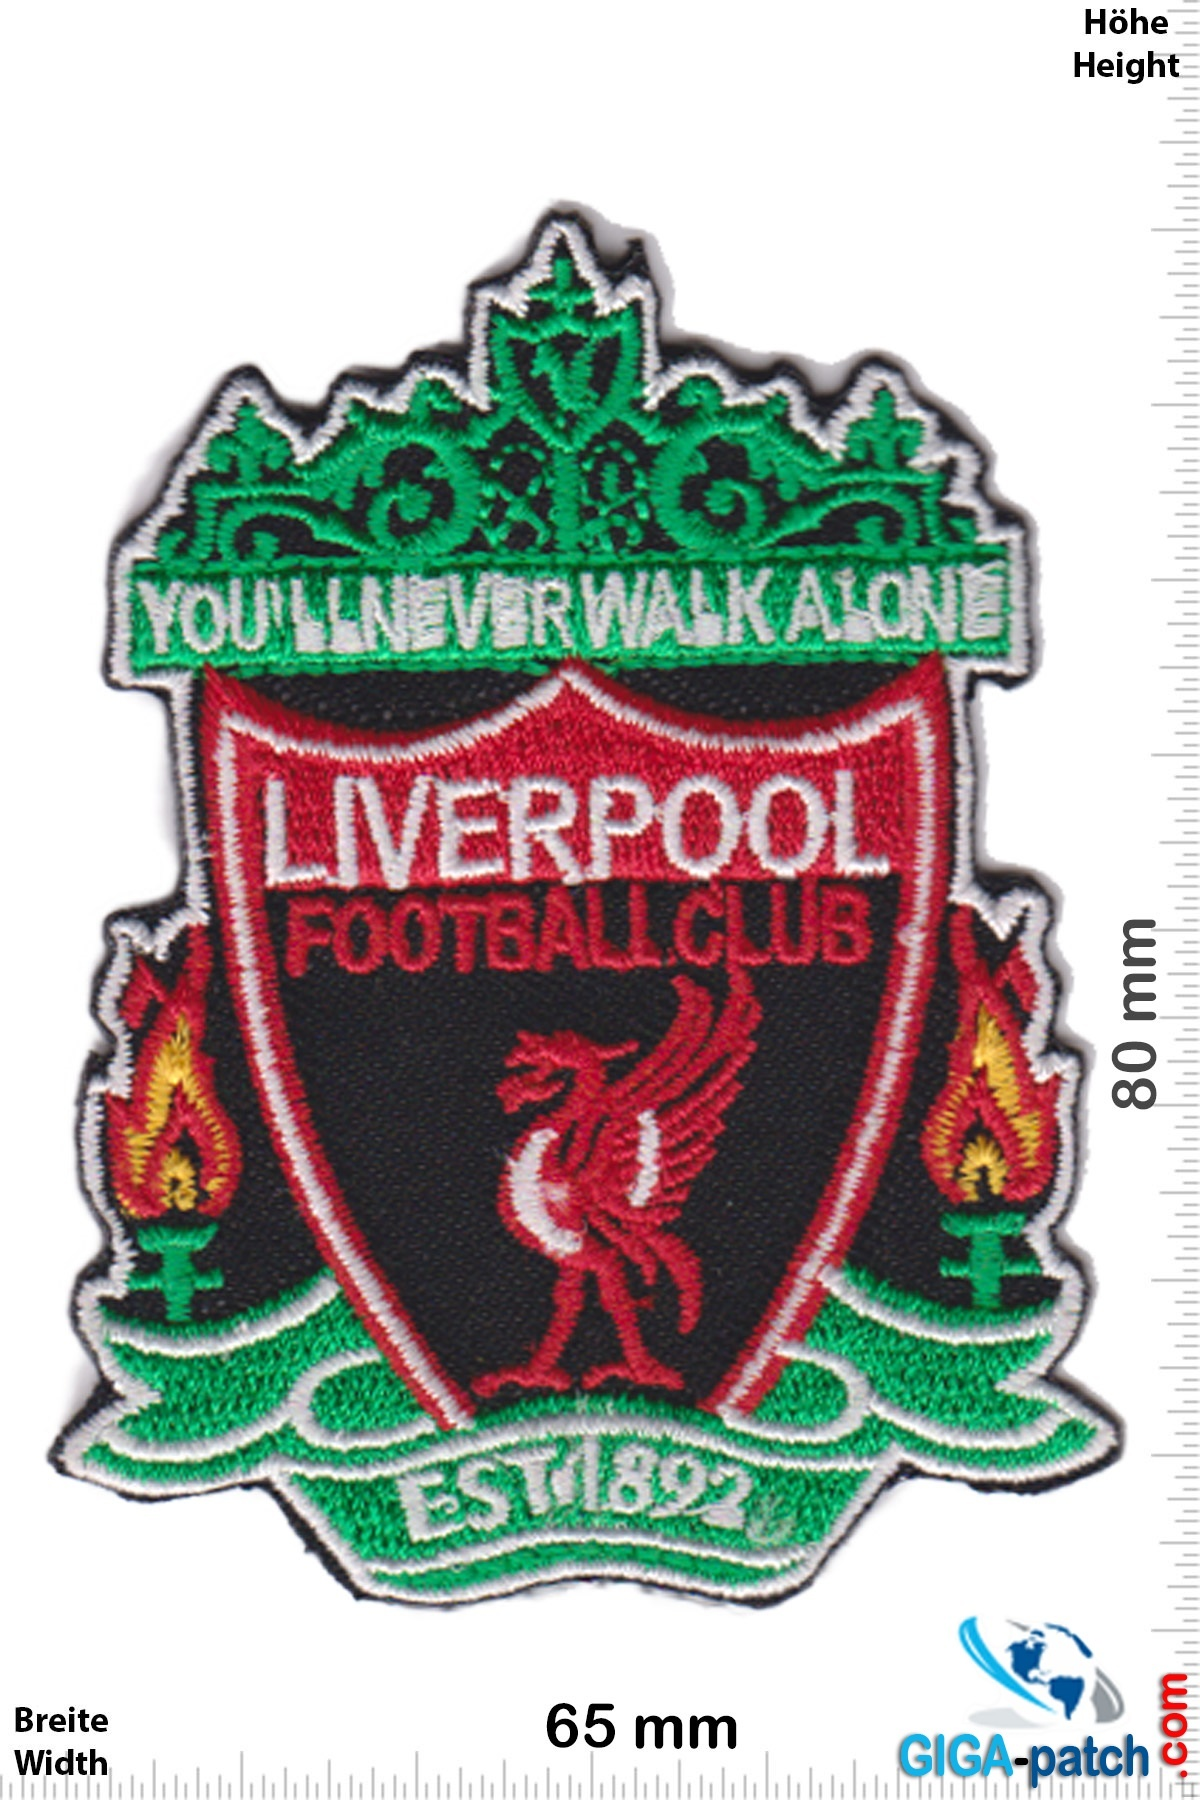 Fc Liverpool Fc Liverpool Red Black You Ll Never Walk Alone The Reds Football Club Uk Soccer Soccer Patch Back Patches Patch Keychains Stickers Giga Patch Com Biggest Patch Shop Worldwide